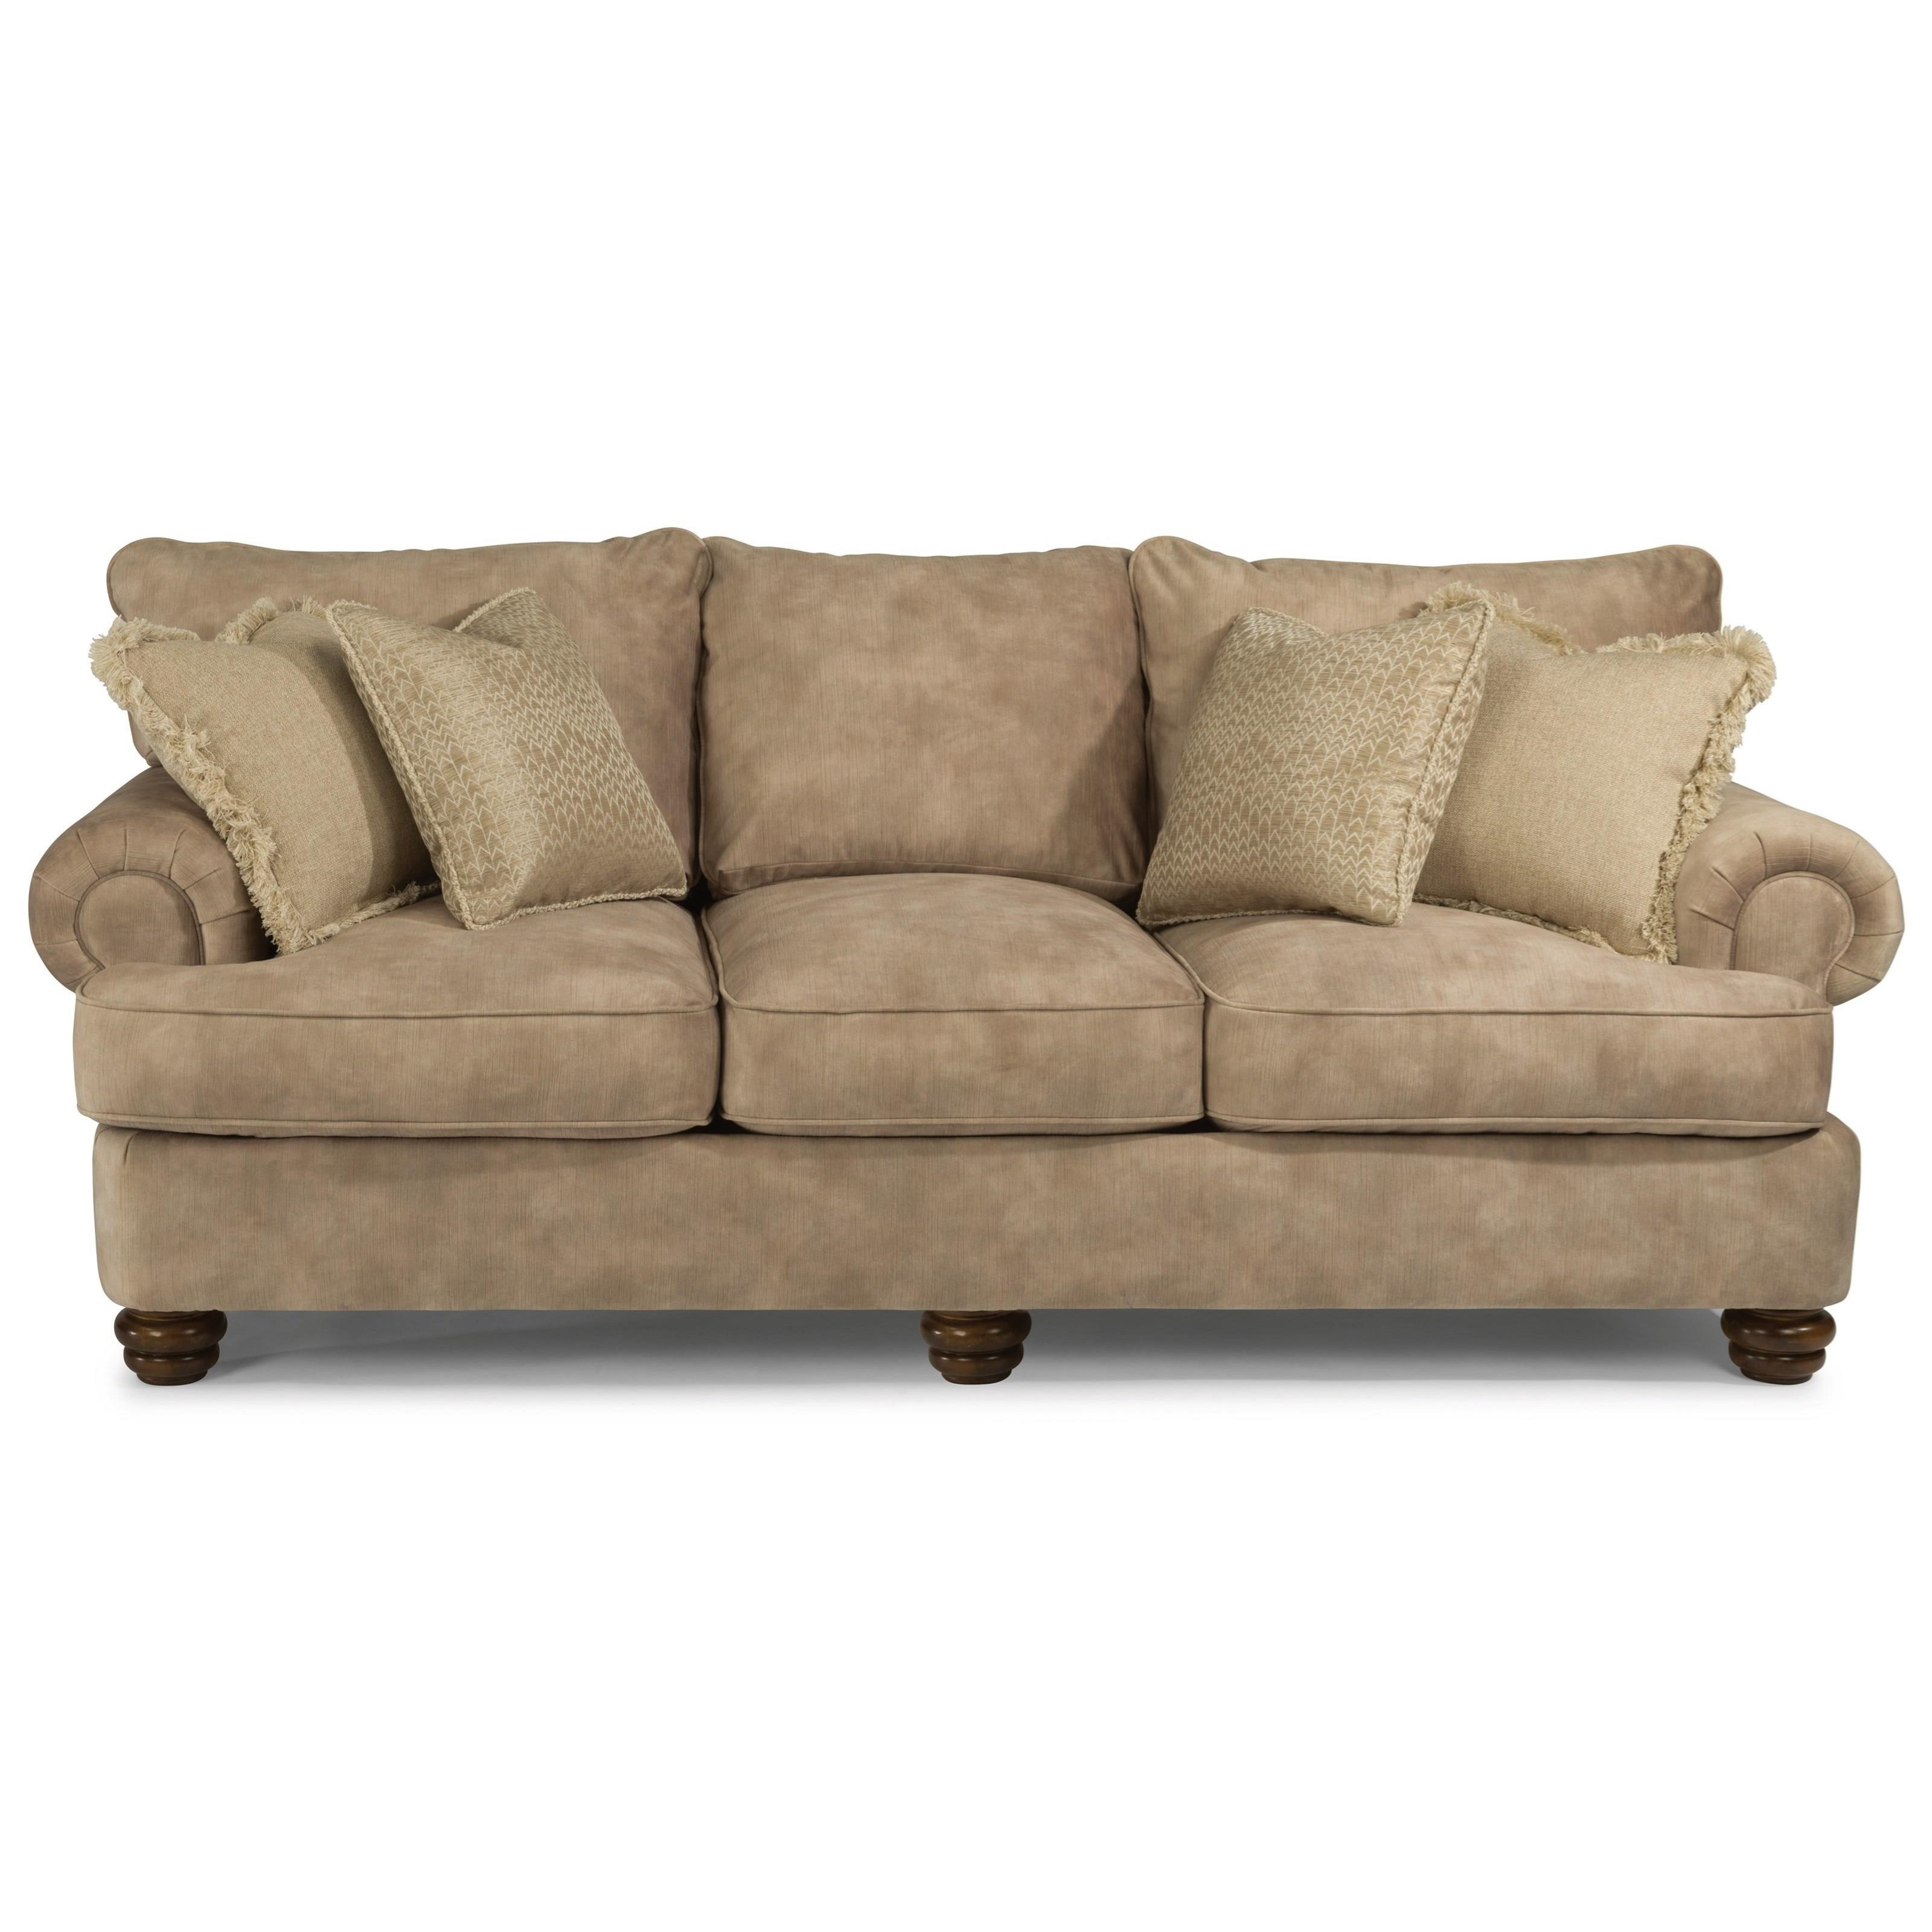 American Furniture Providence Sectional: Flexsteel Providence Traditional Sofa With Bun Feet